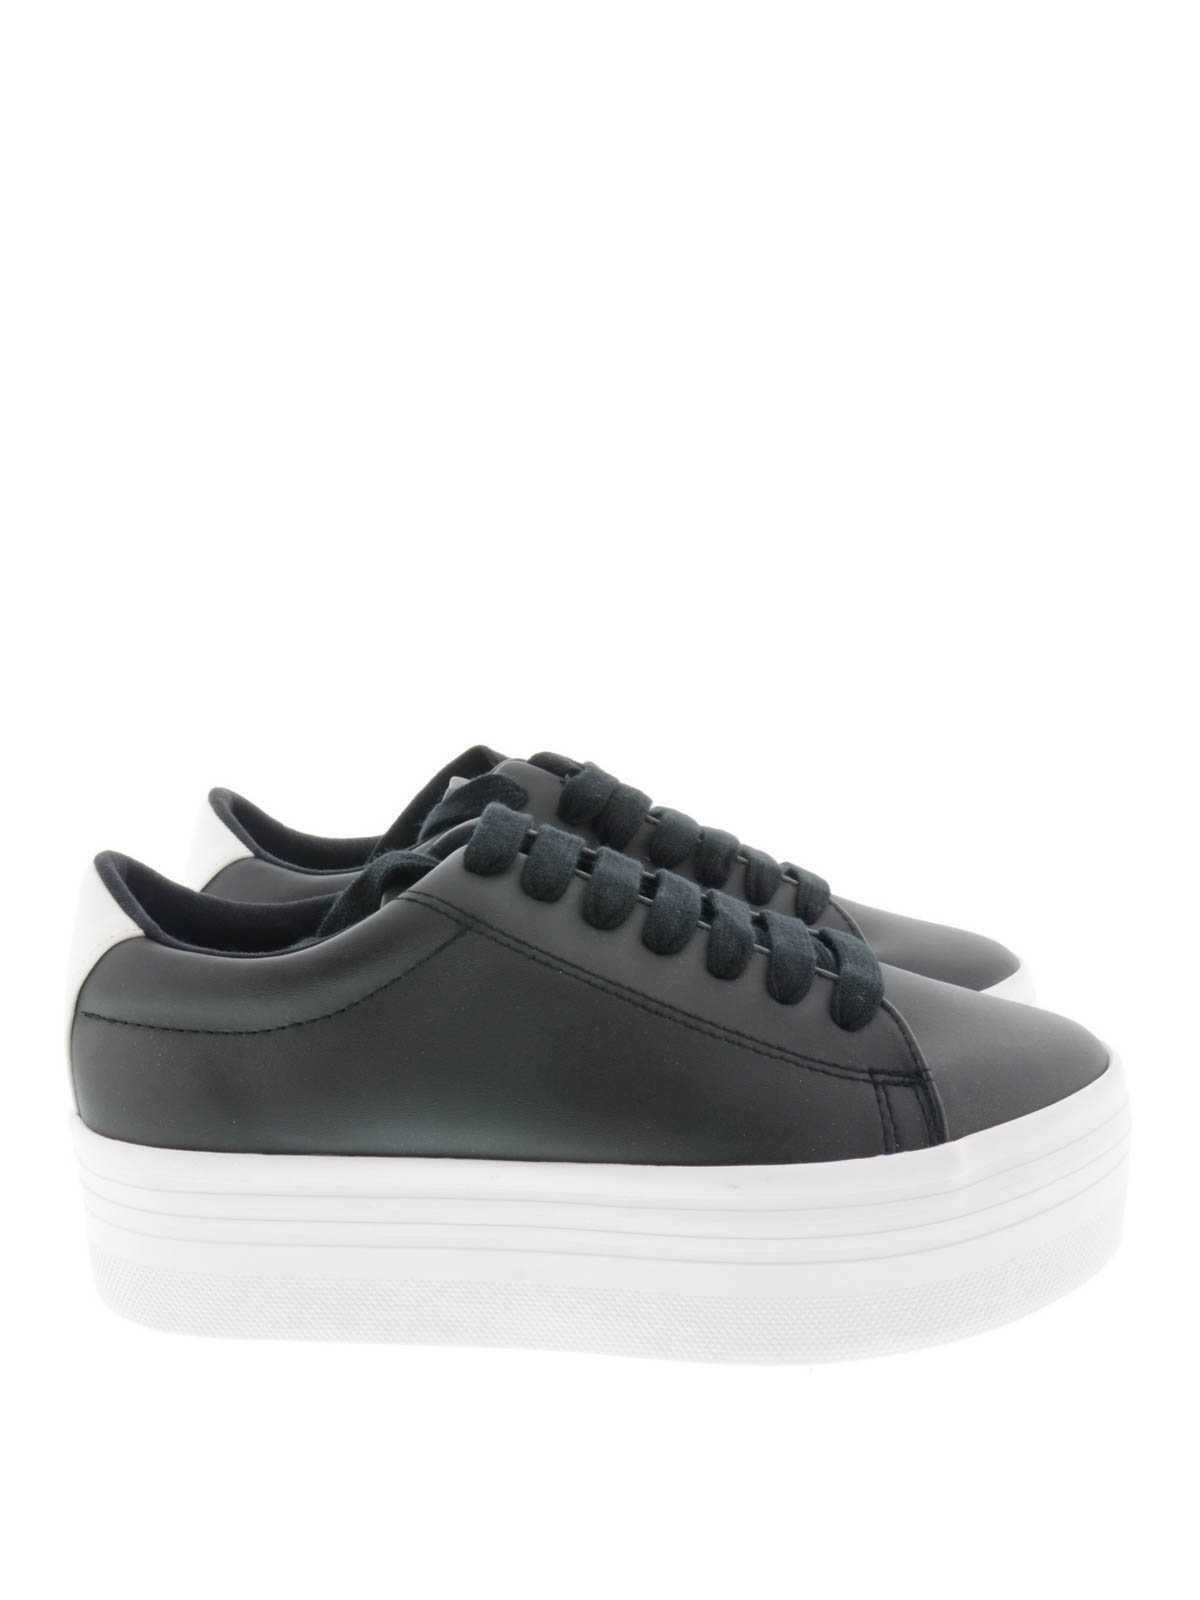 Jeffrey Campbell - Sneaker Stan in pelle - sneakers - STANBLACK WHITE 314a2ae0133